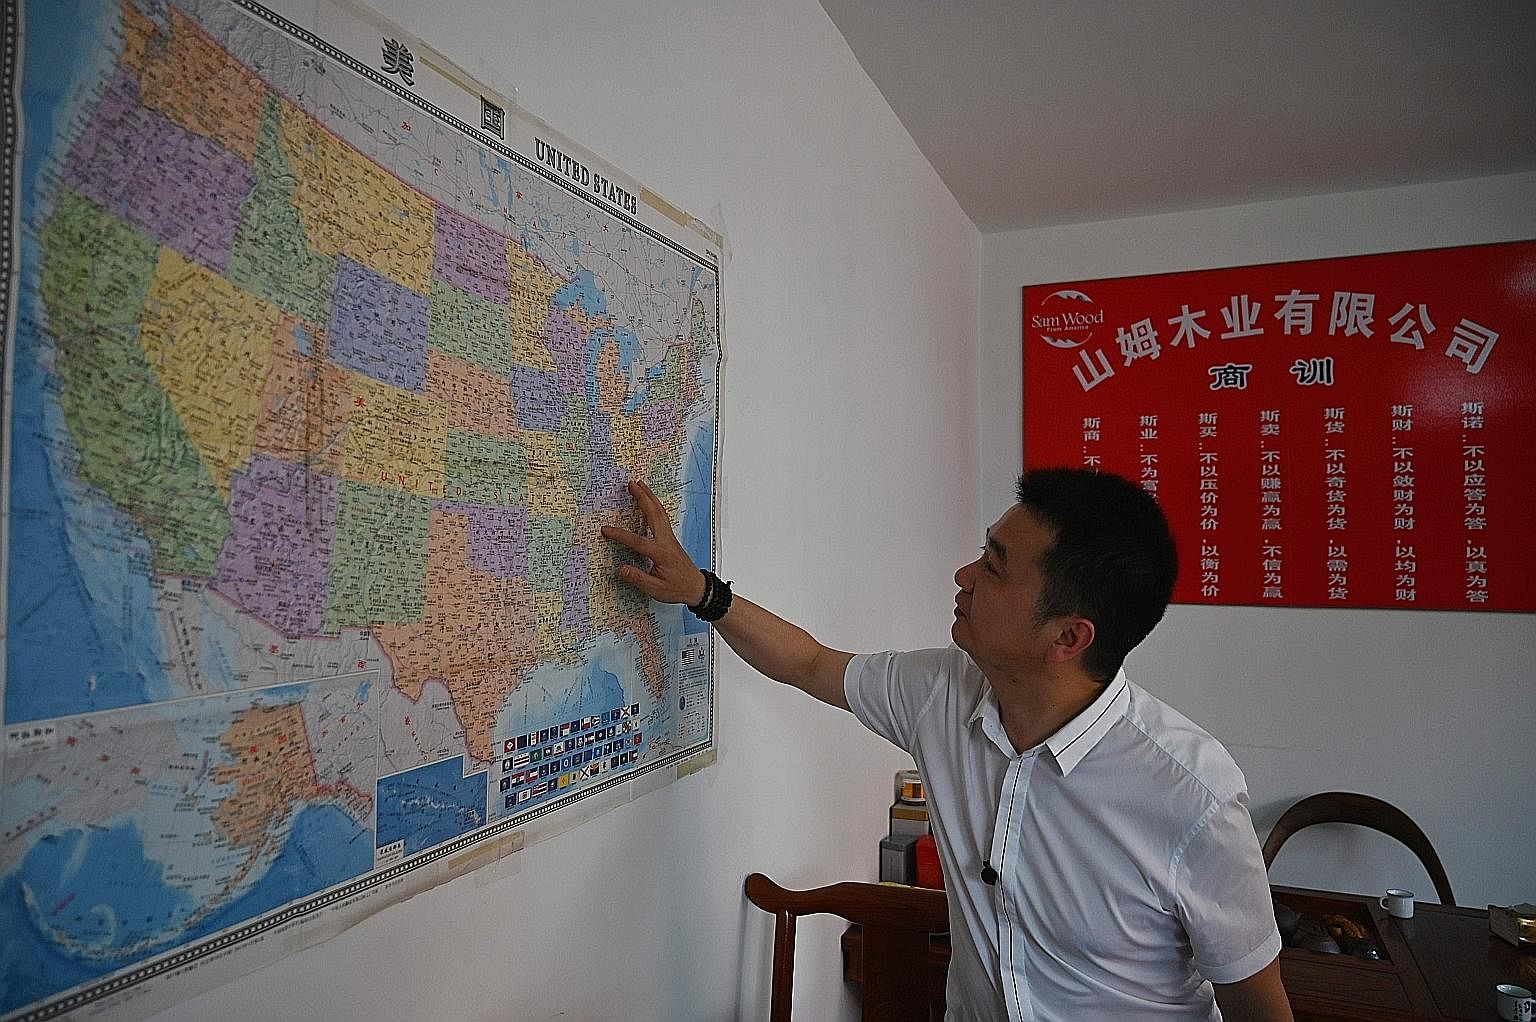 Mr Xu Xuebing, founder of China firm Sam Wood, showing where in the United States his company imports wood from. While China is ahead in some crucial areas, such as artificial intelligence, it is behind and dependent on foreign sources - especially t